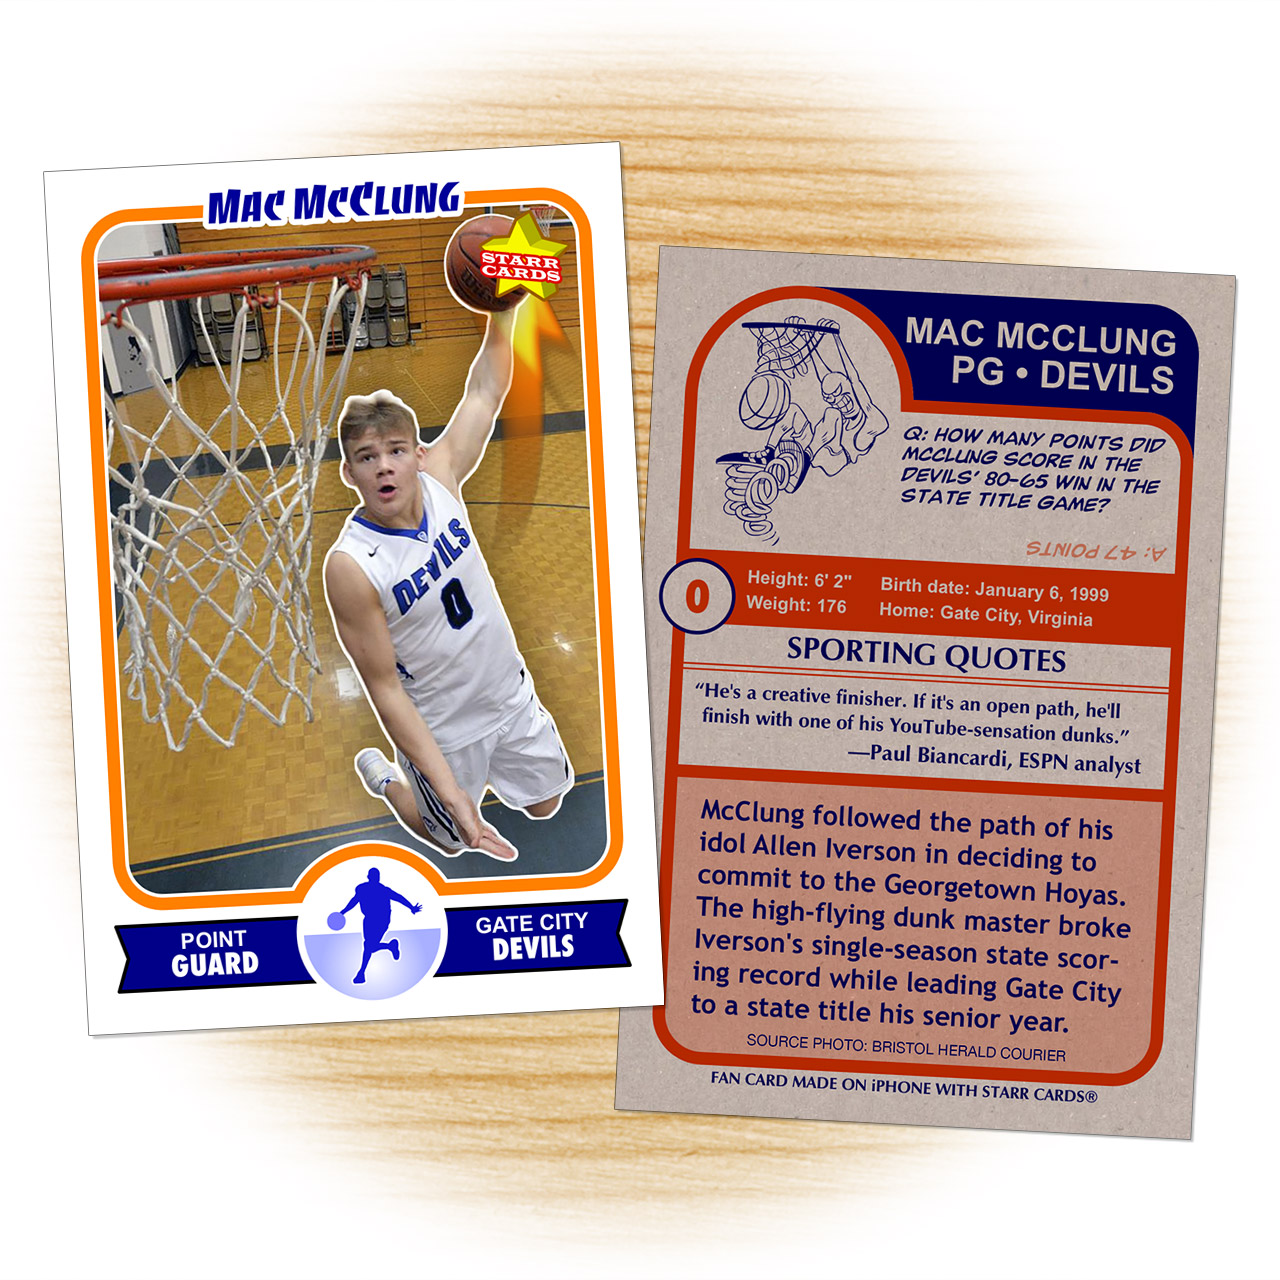 Gate City Devils Mac Mcclung Brings High Flying Dunks To